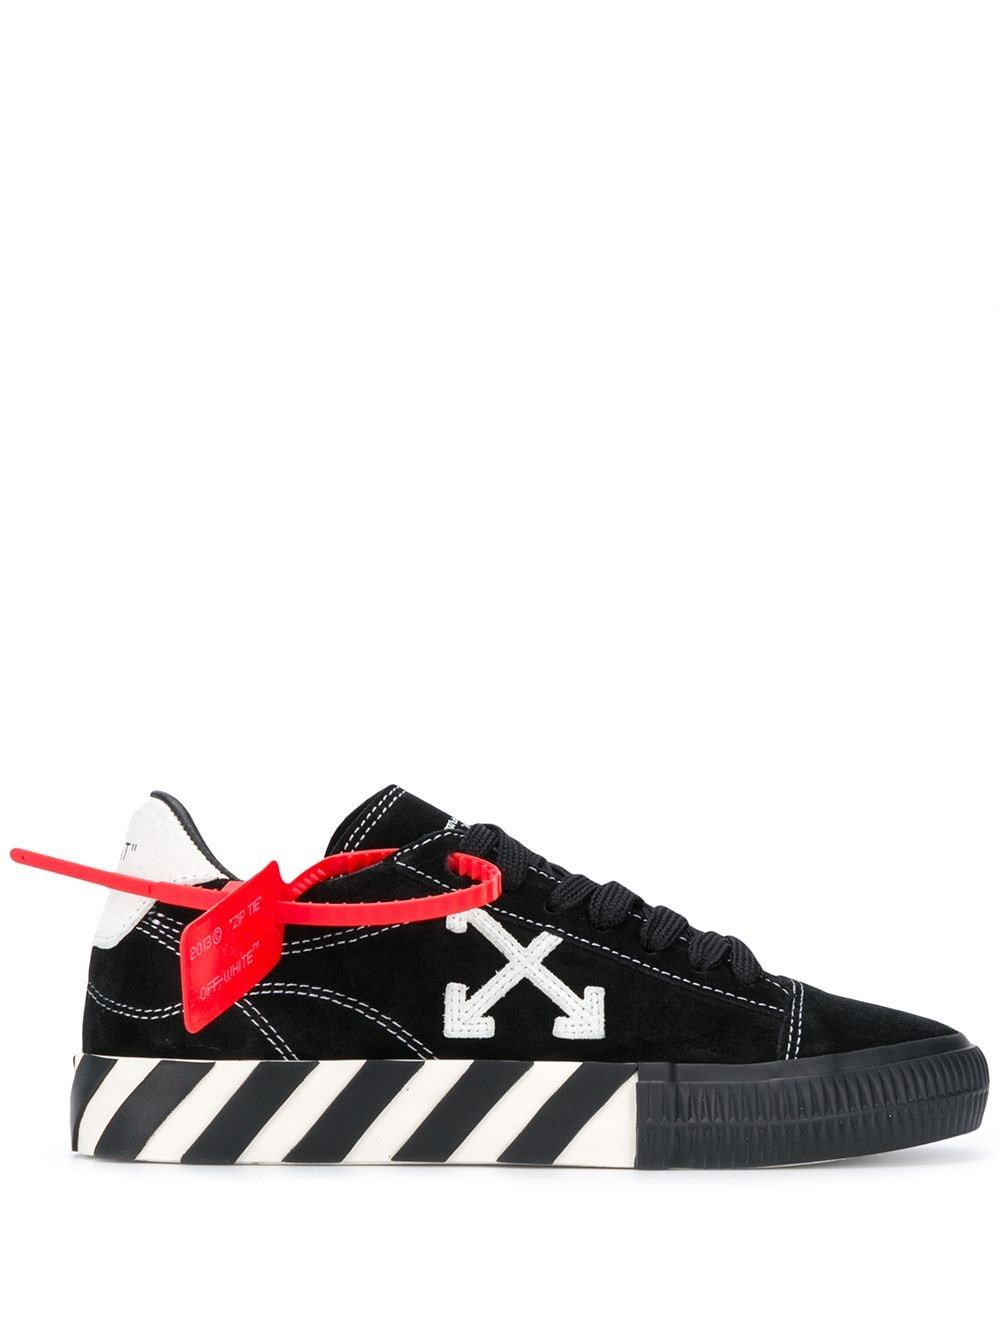 OFF-WHITE Contrast Stitched Low Vulcanized Sneakers Black - Maison De Fashion